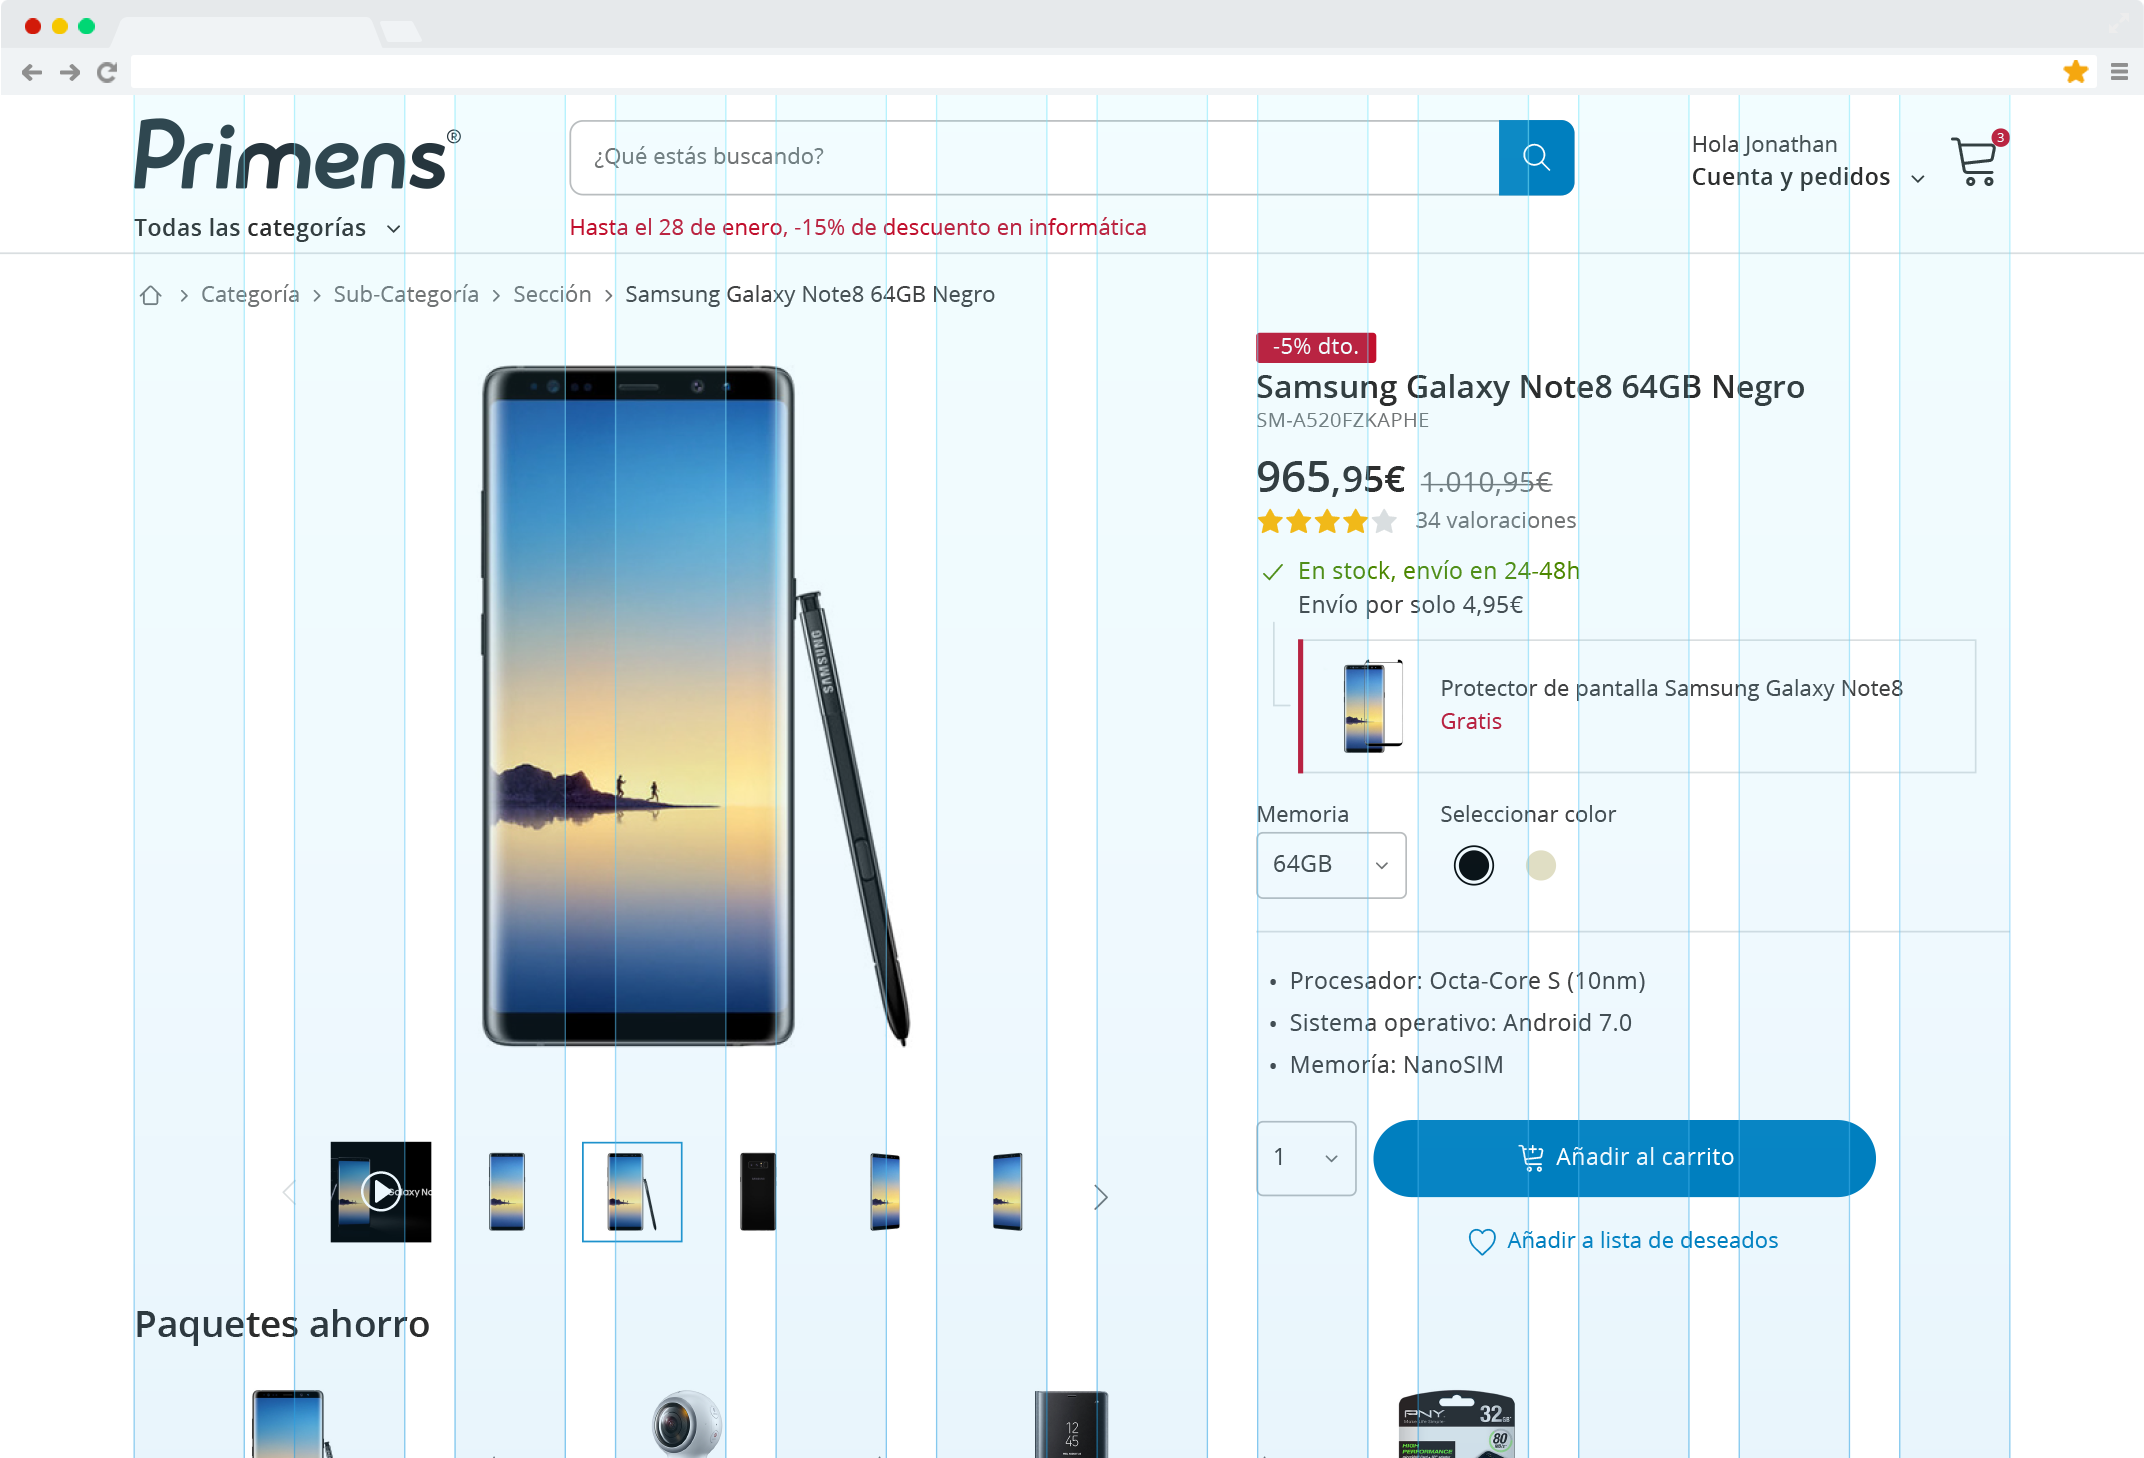 Construction of the Primens product page